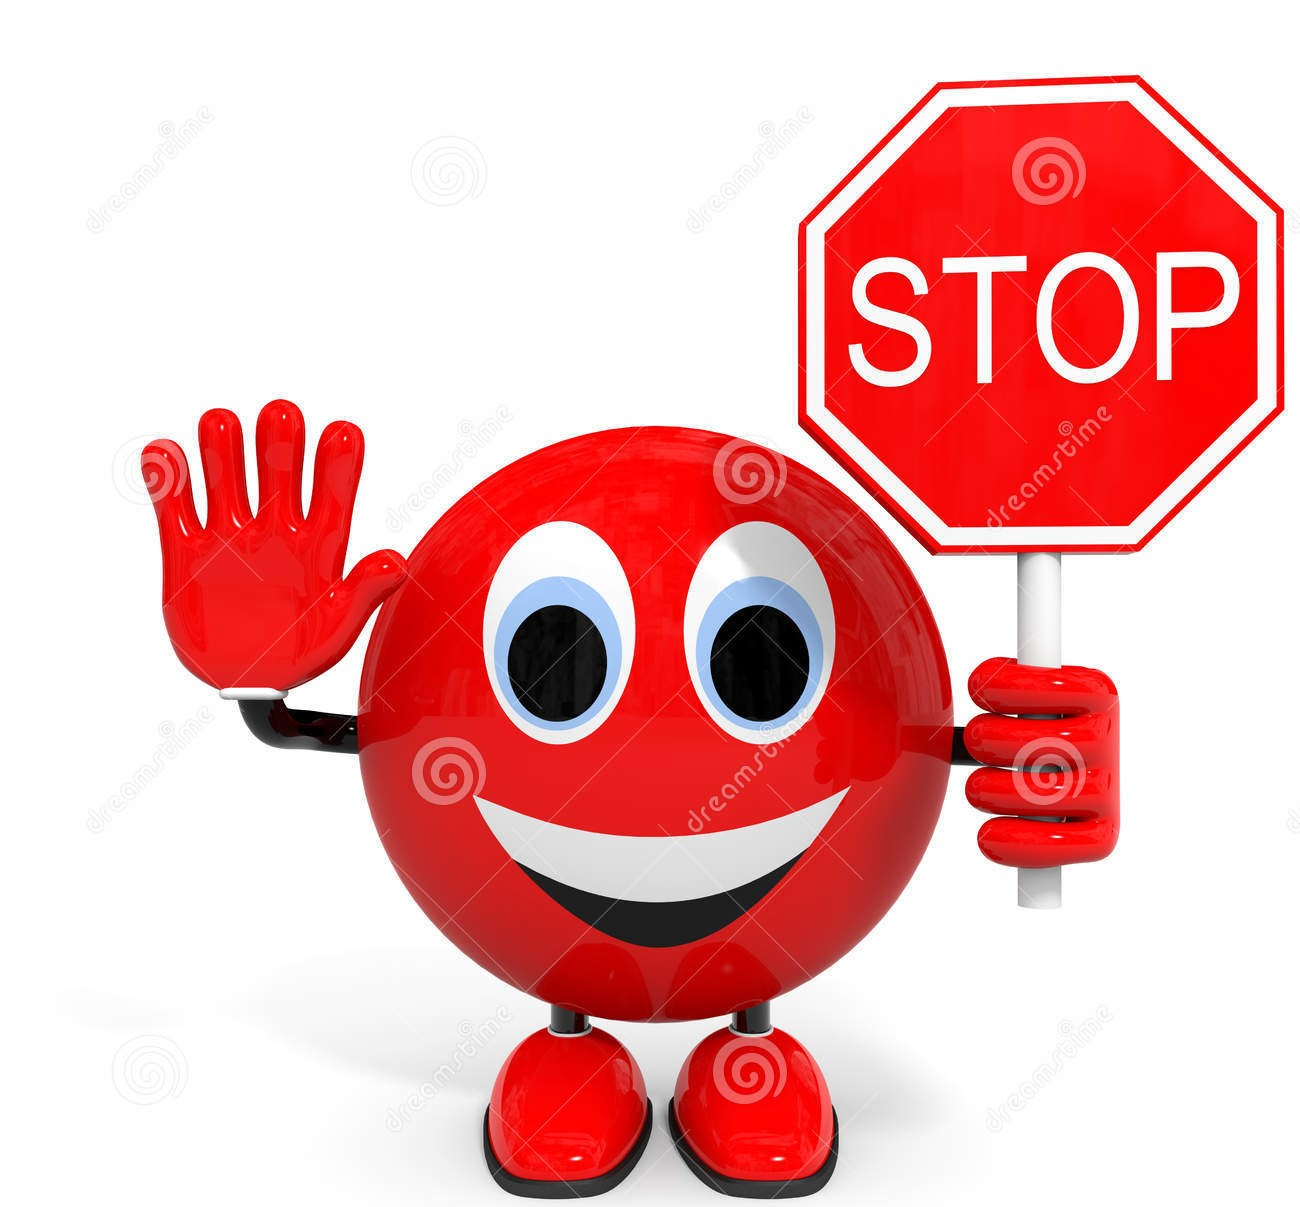 stop-illustration-d-character-90202881